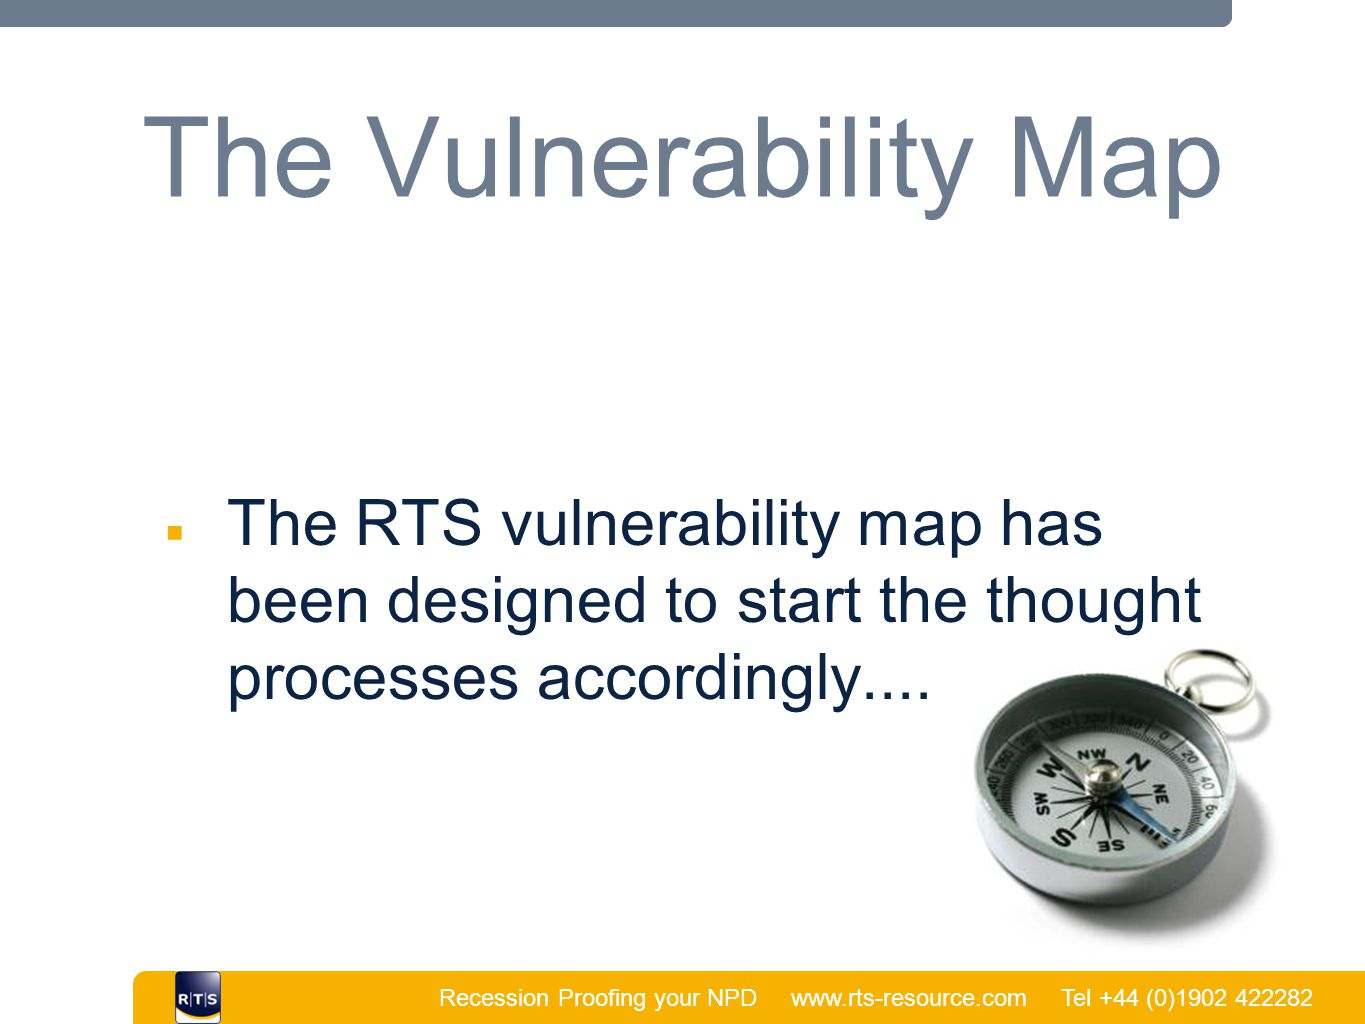 Recession Proofing your NPD www.rts-resource.com Tel +44 (0)1902 422282 | The Vulnerability Map ■ The RTS vulnerability map has been designed to start the thought processes accordingly....